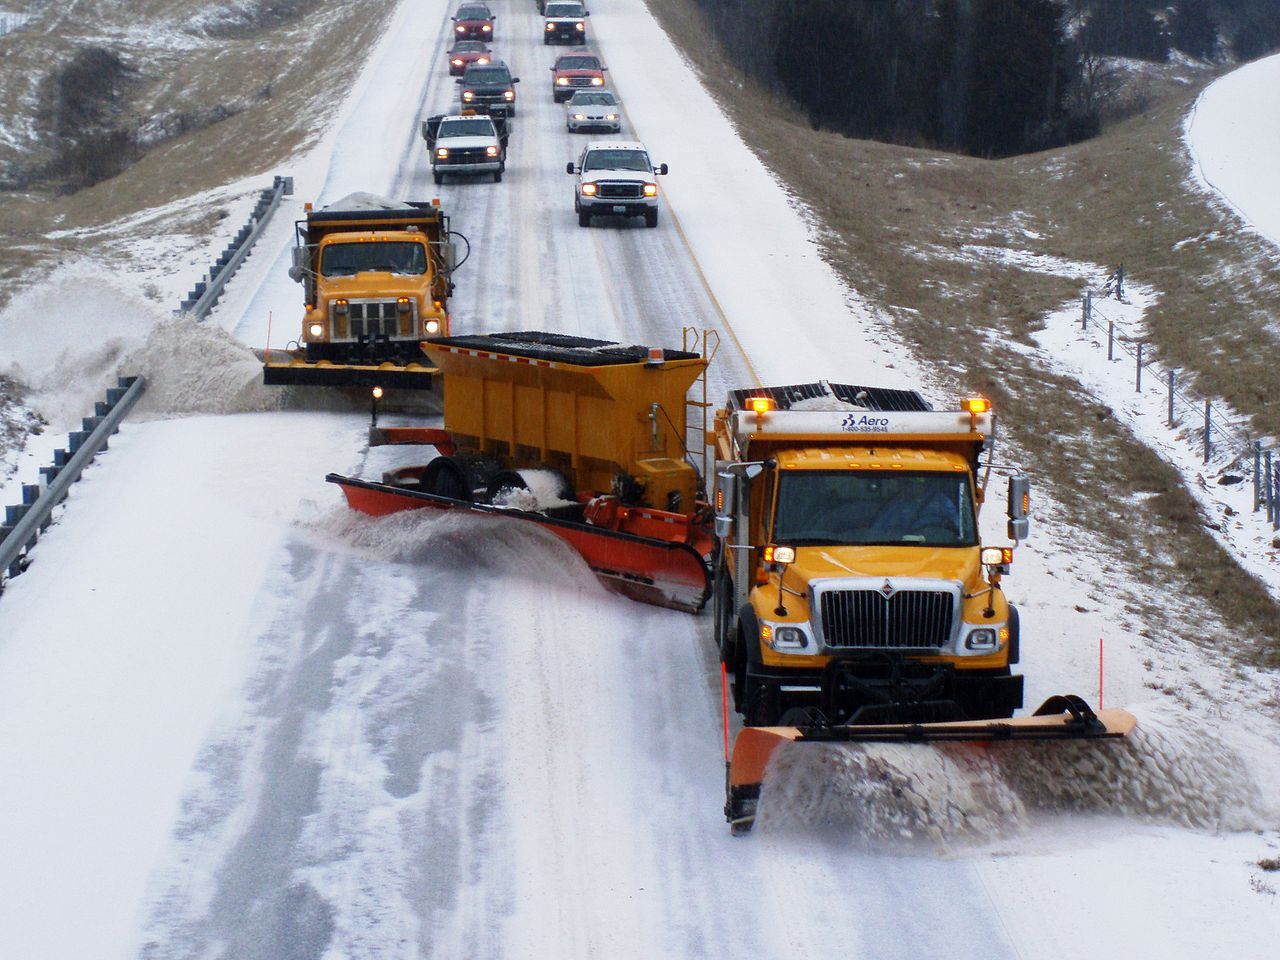 1280px-TowPLow_front_view2.JPG